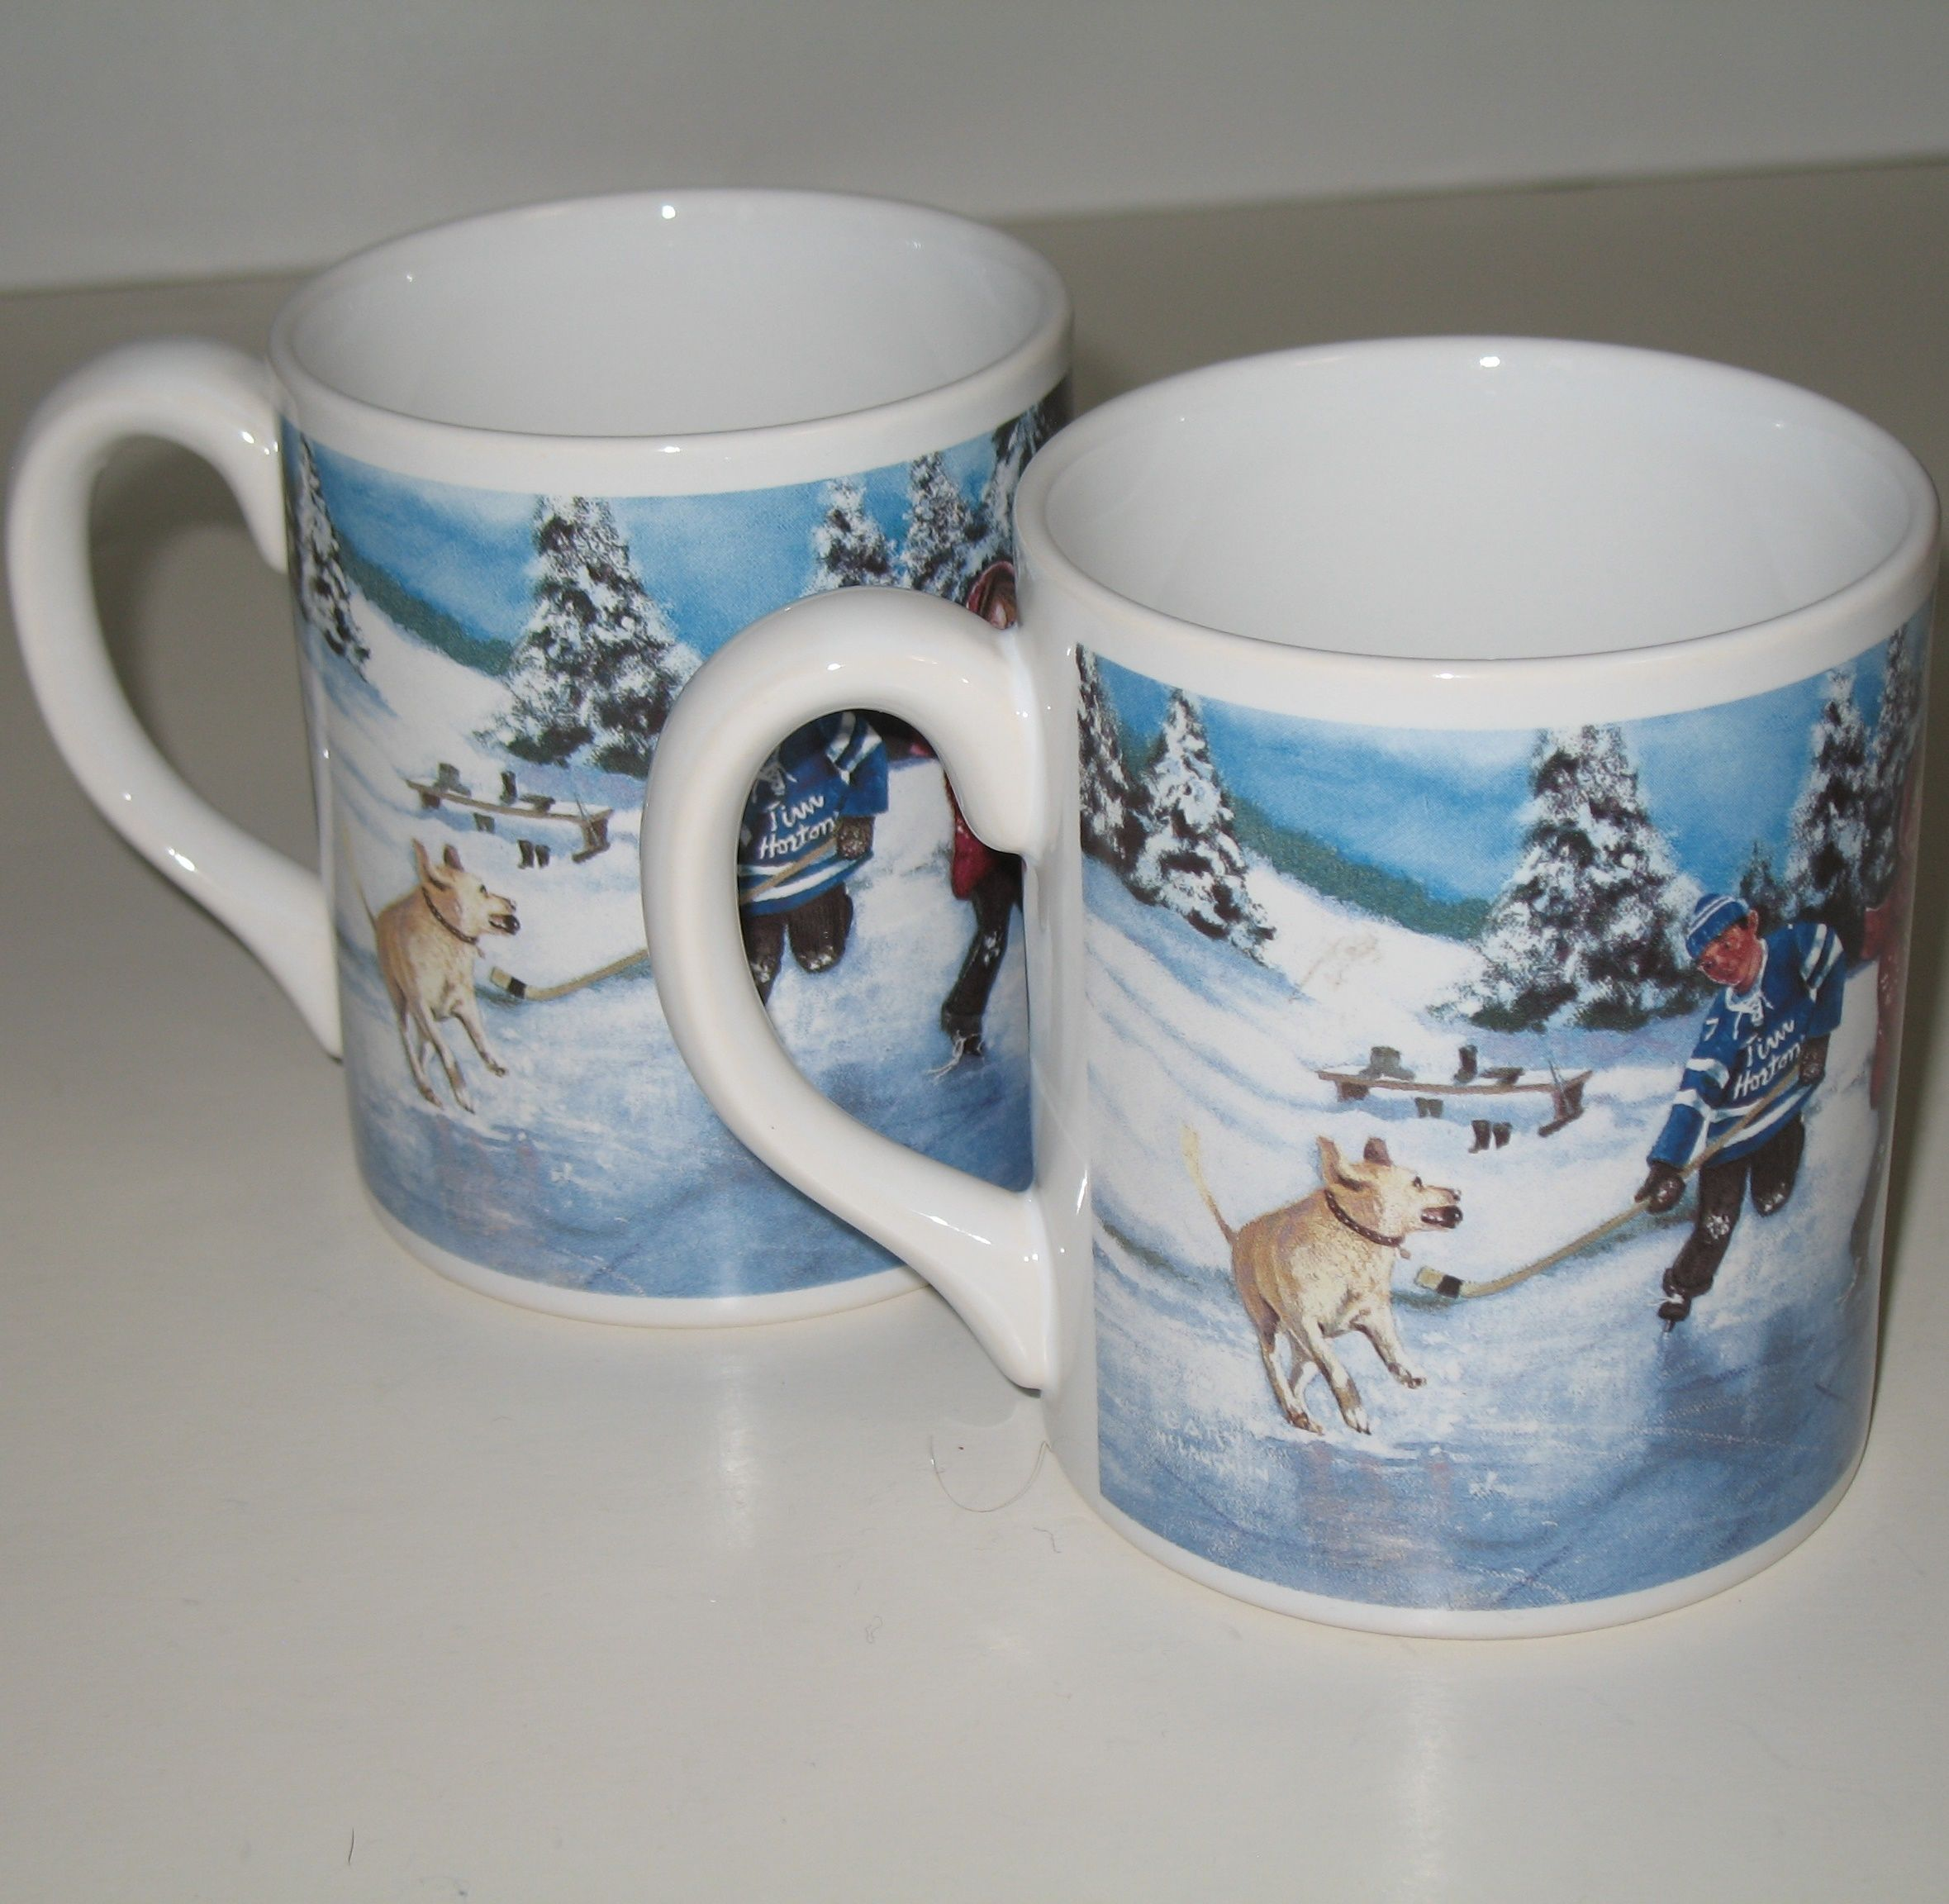 Feeling WINTERY? Here's a pair of Tim Hortons coffee mugs